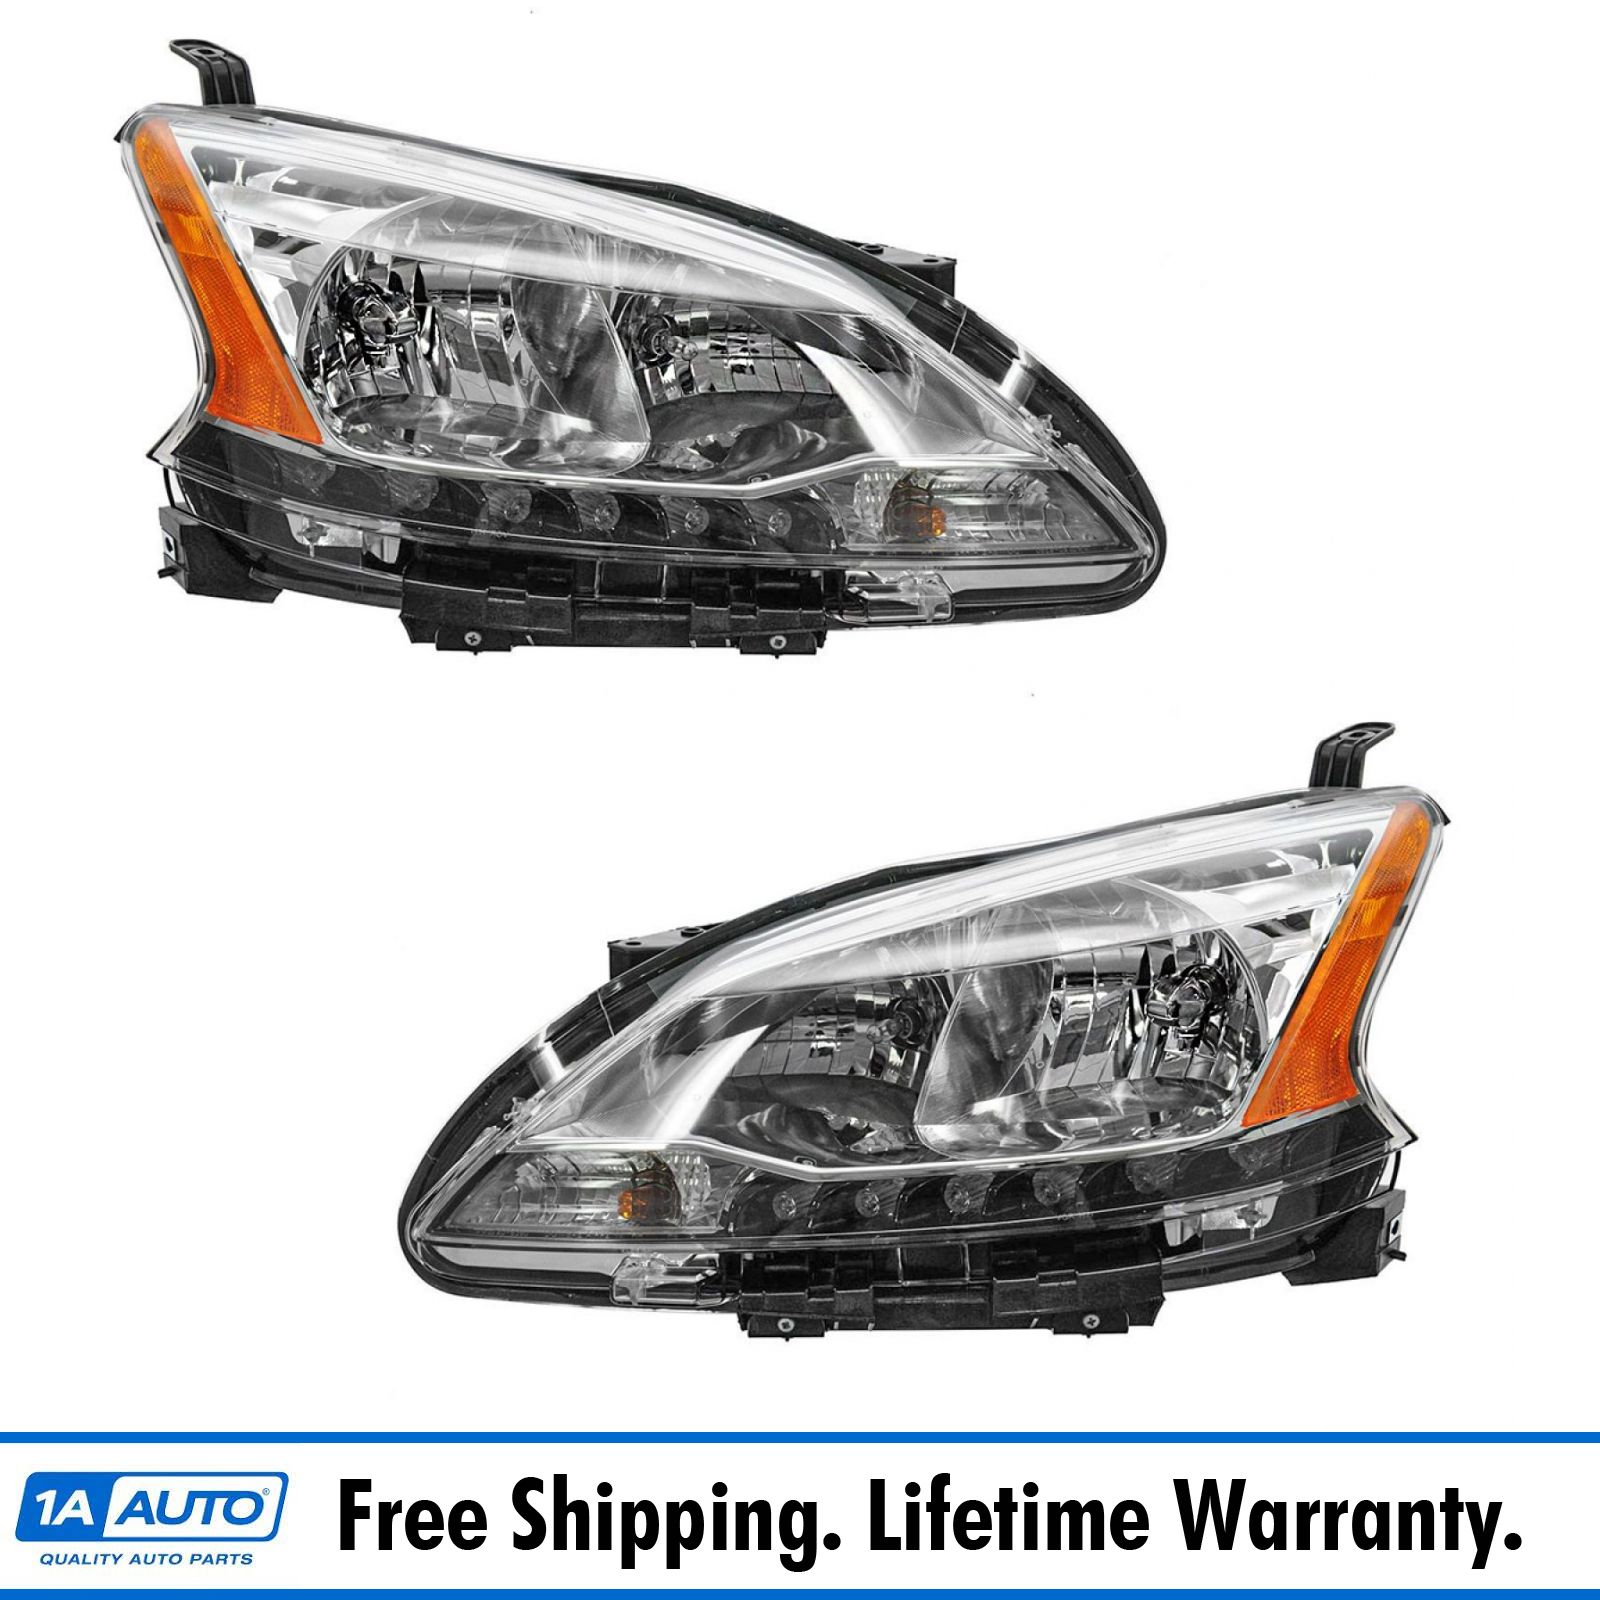 For Sentra 02-03 HEAD LAMP RH,Assembly,Halogen,w// Chrome Trim,CA//GXE//XE//Limited